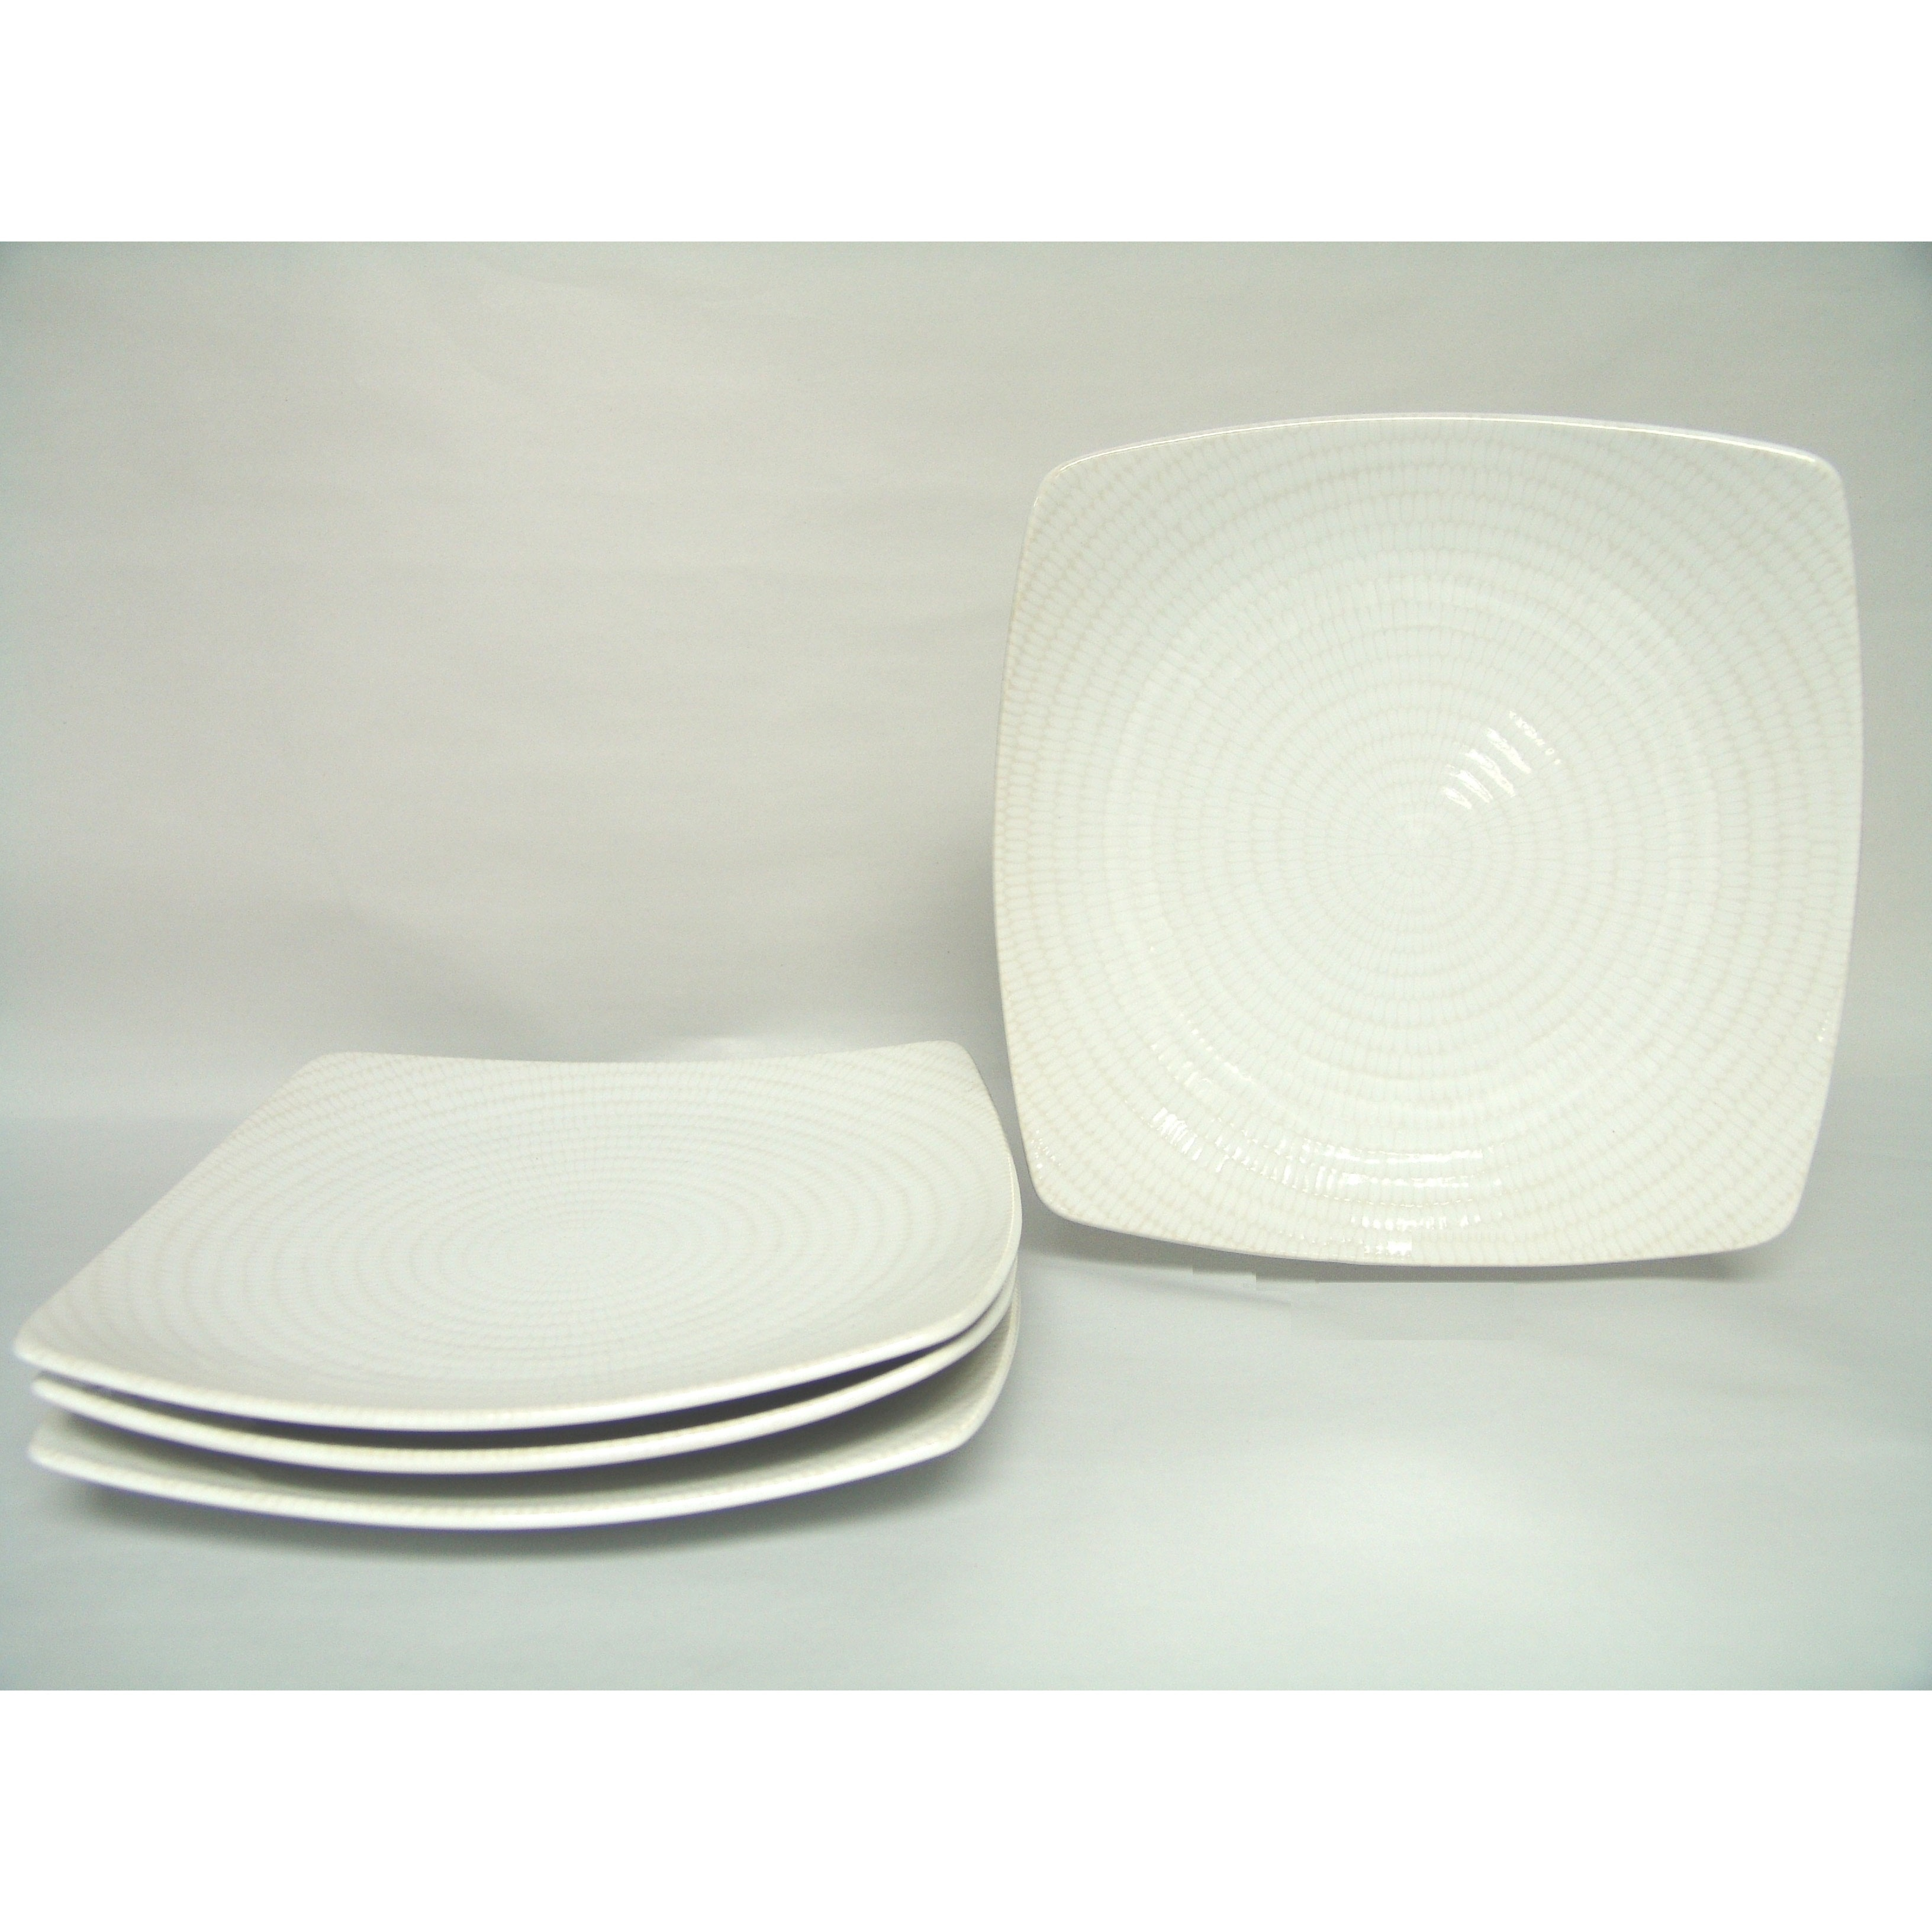 White Rice 10-inch Square Dinner Plate (Set of 4) - Free Shipping Today - Overstock - 17500677  sc 1 st  Overstock.com & White Rice 10-inch Square Dinner Plate (Set of 4) - Free Shipping ...